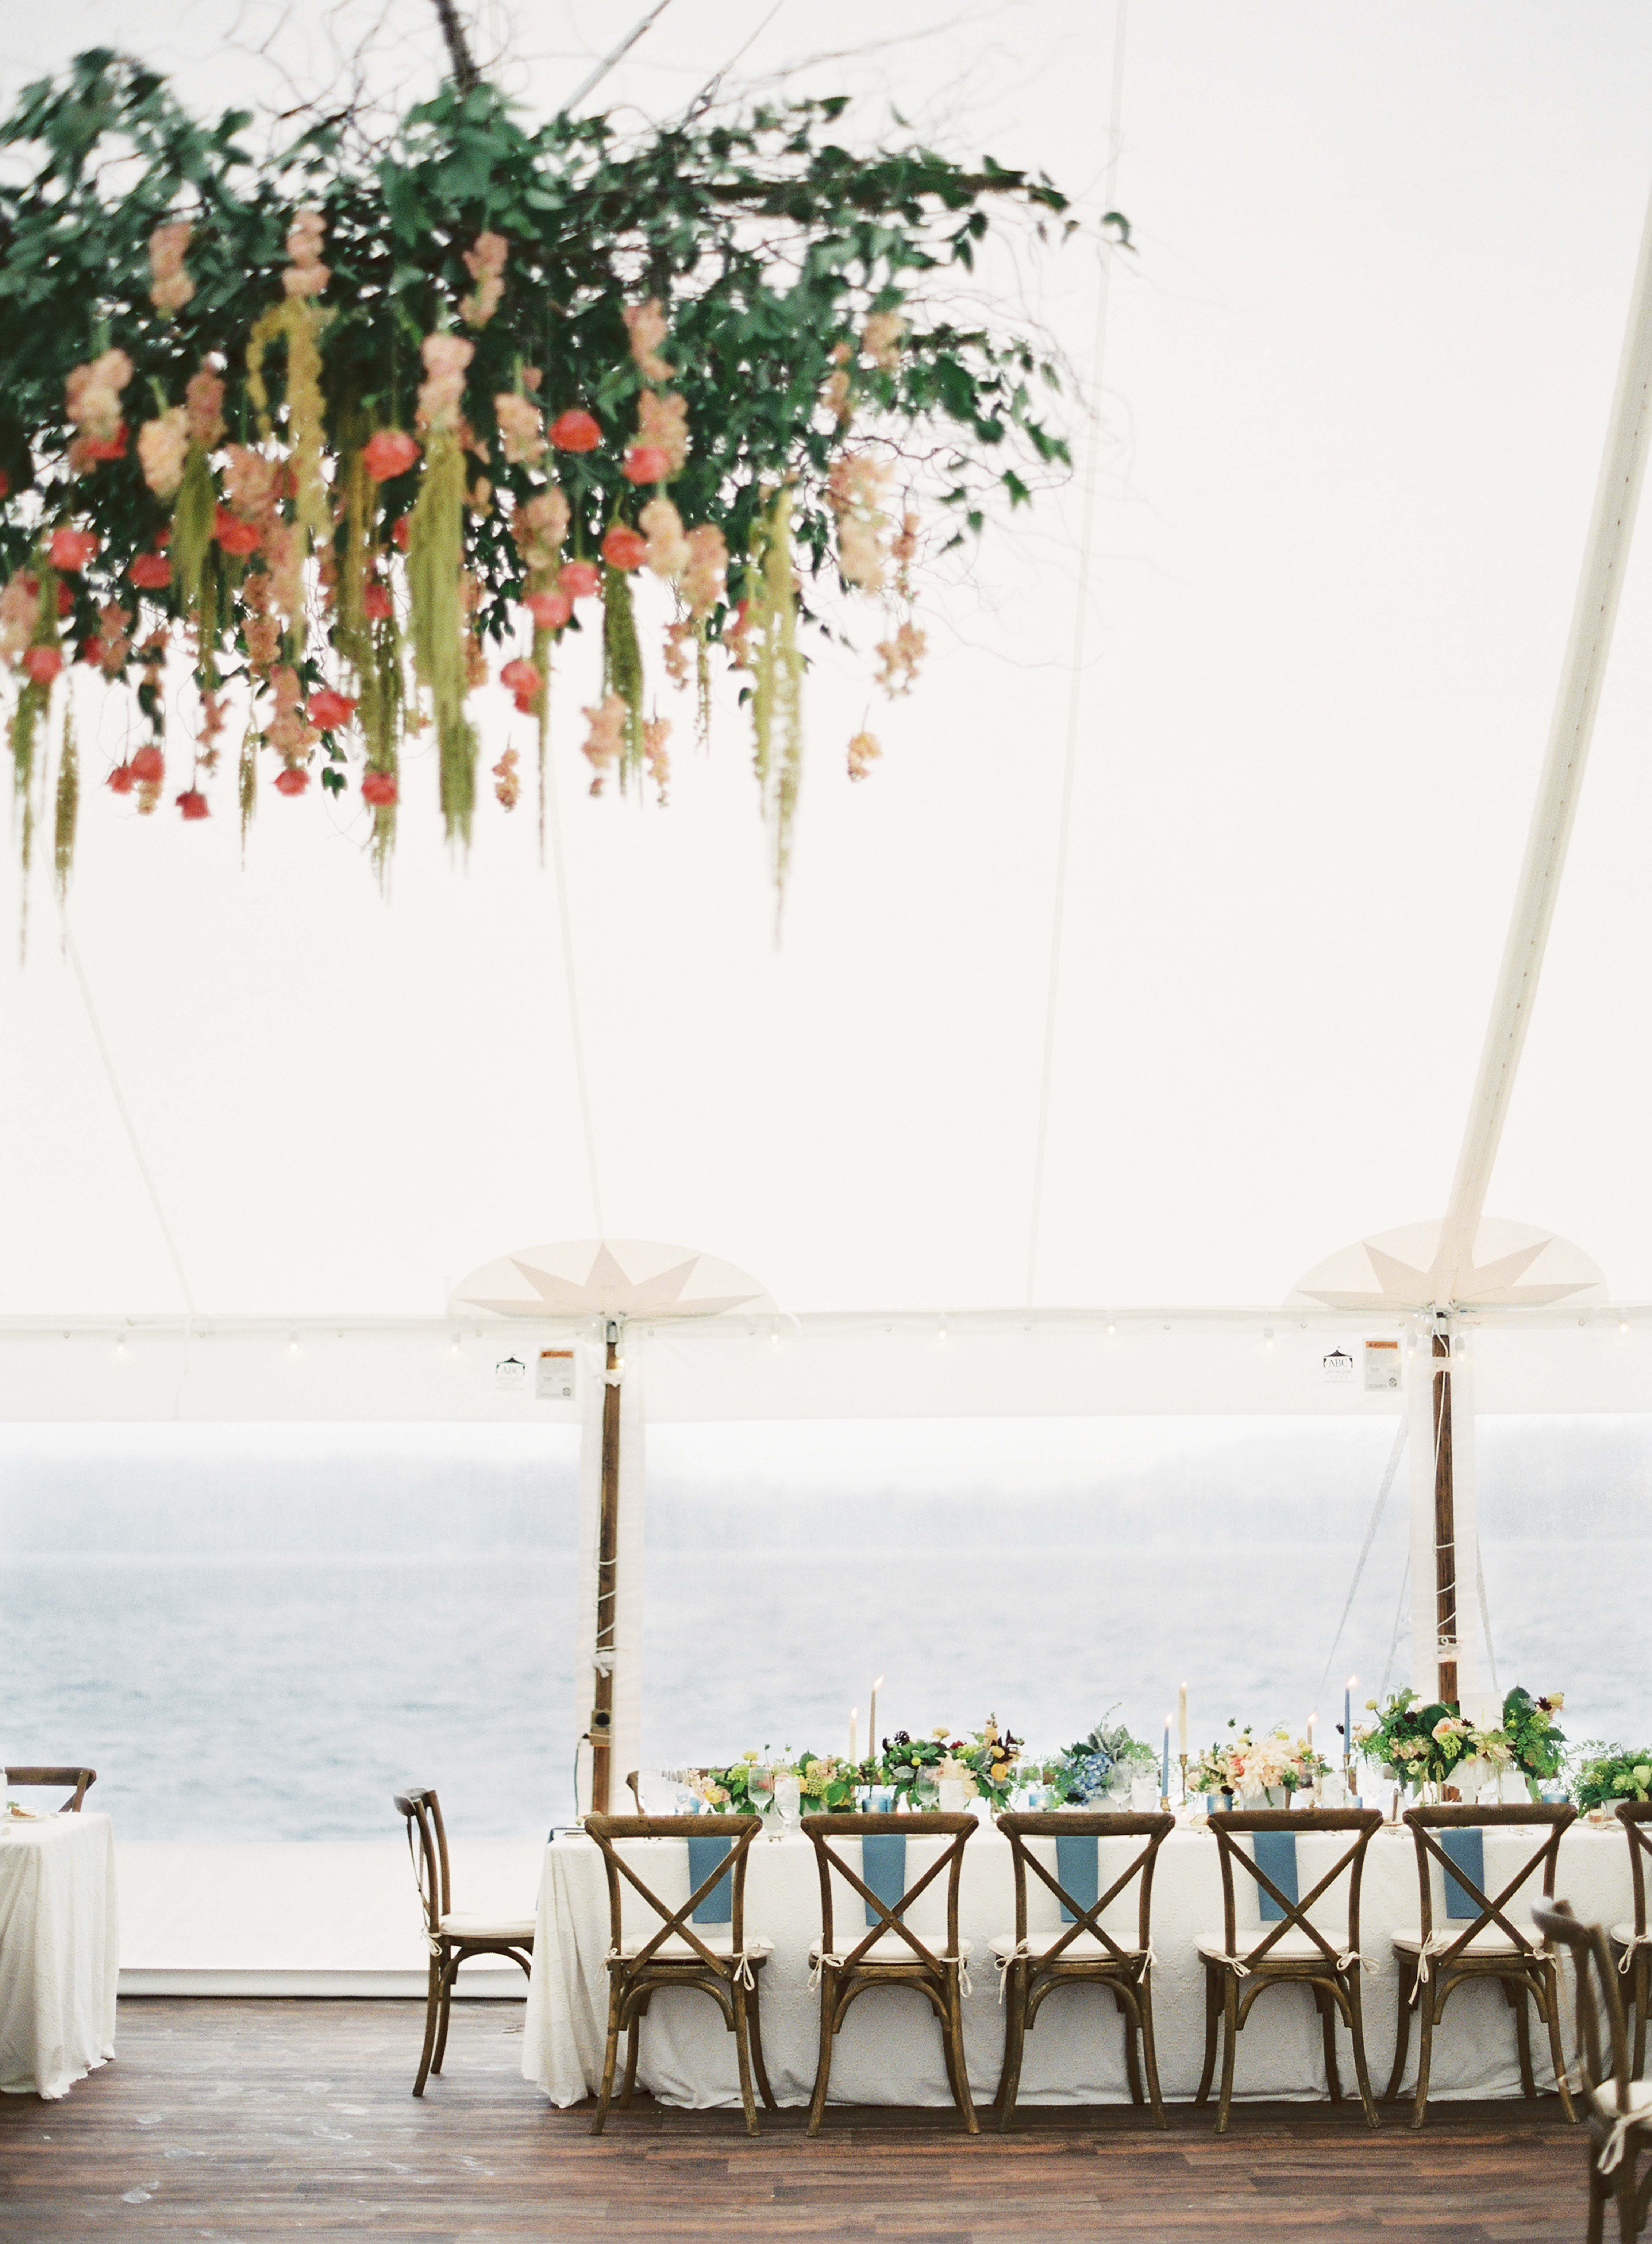 Tent wedding with huge floral chandelier at Pacific Northwest wedding